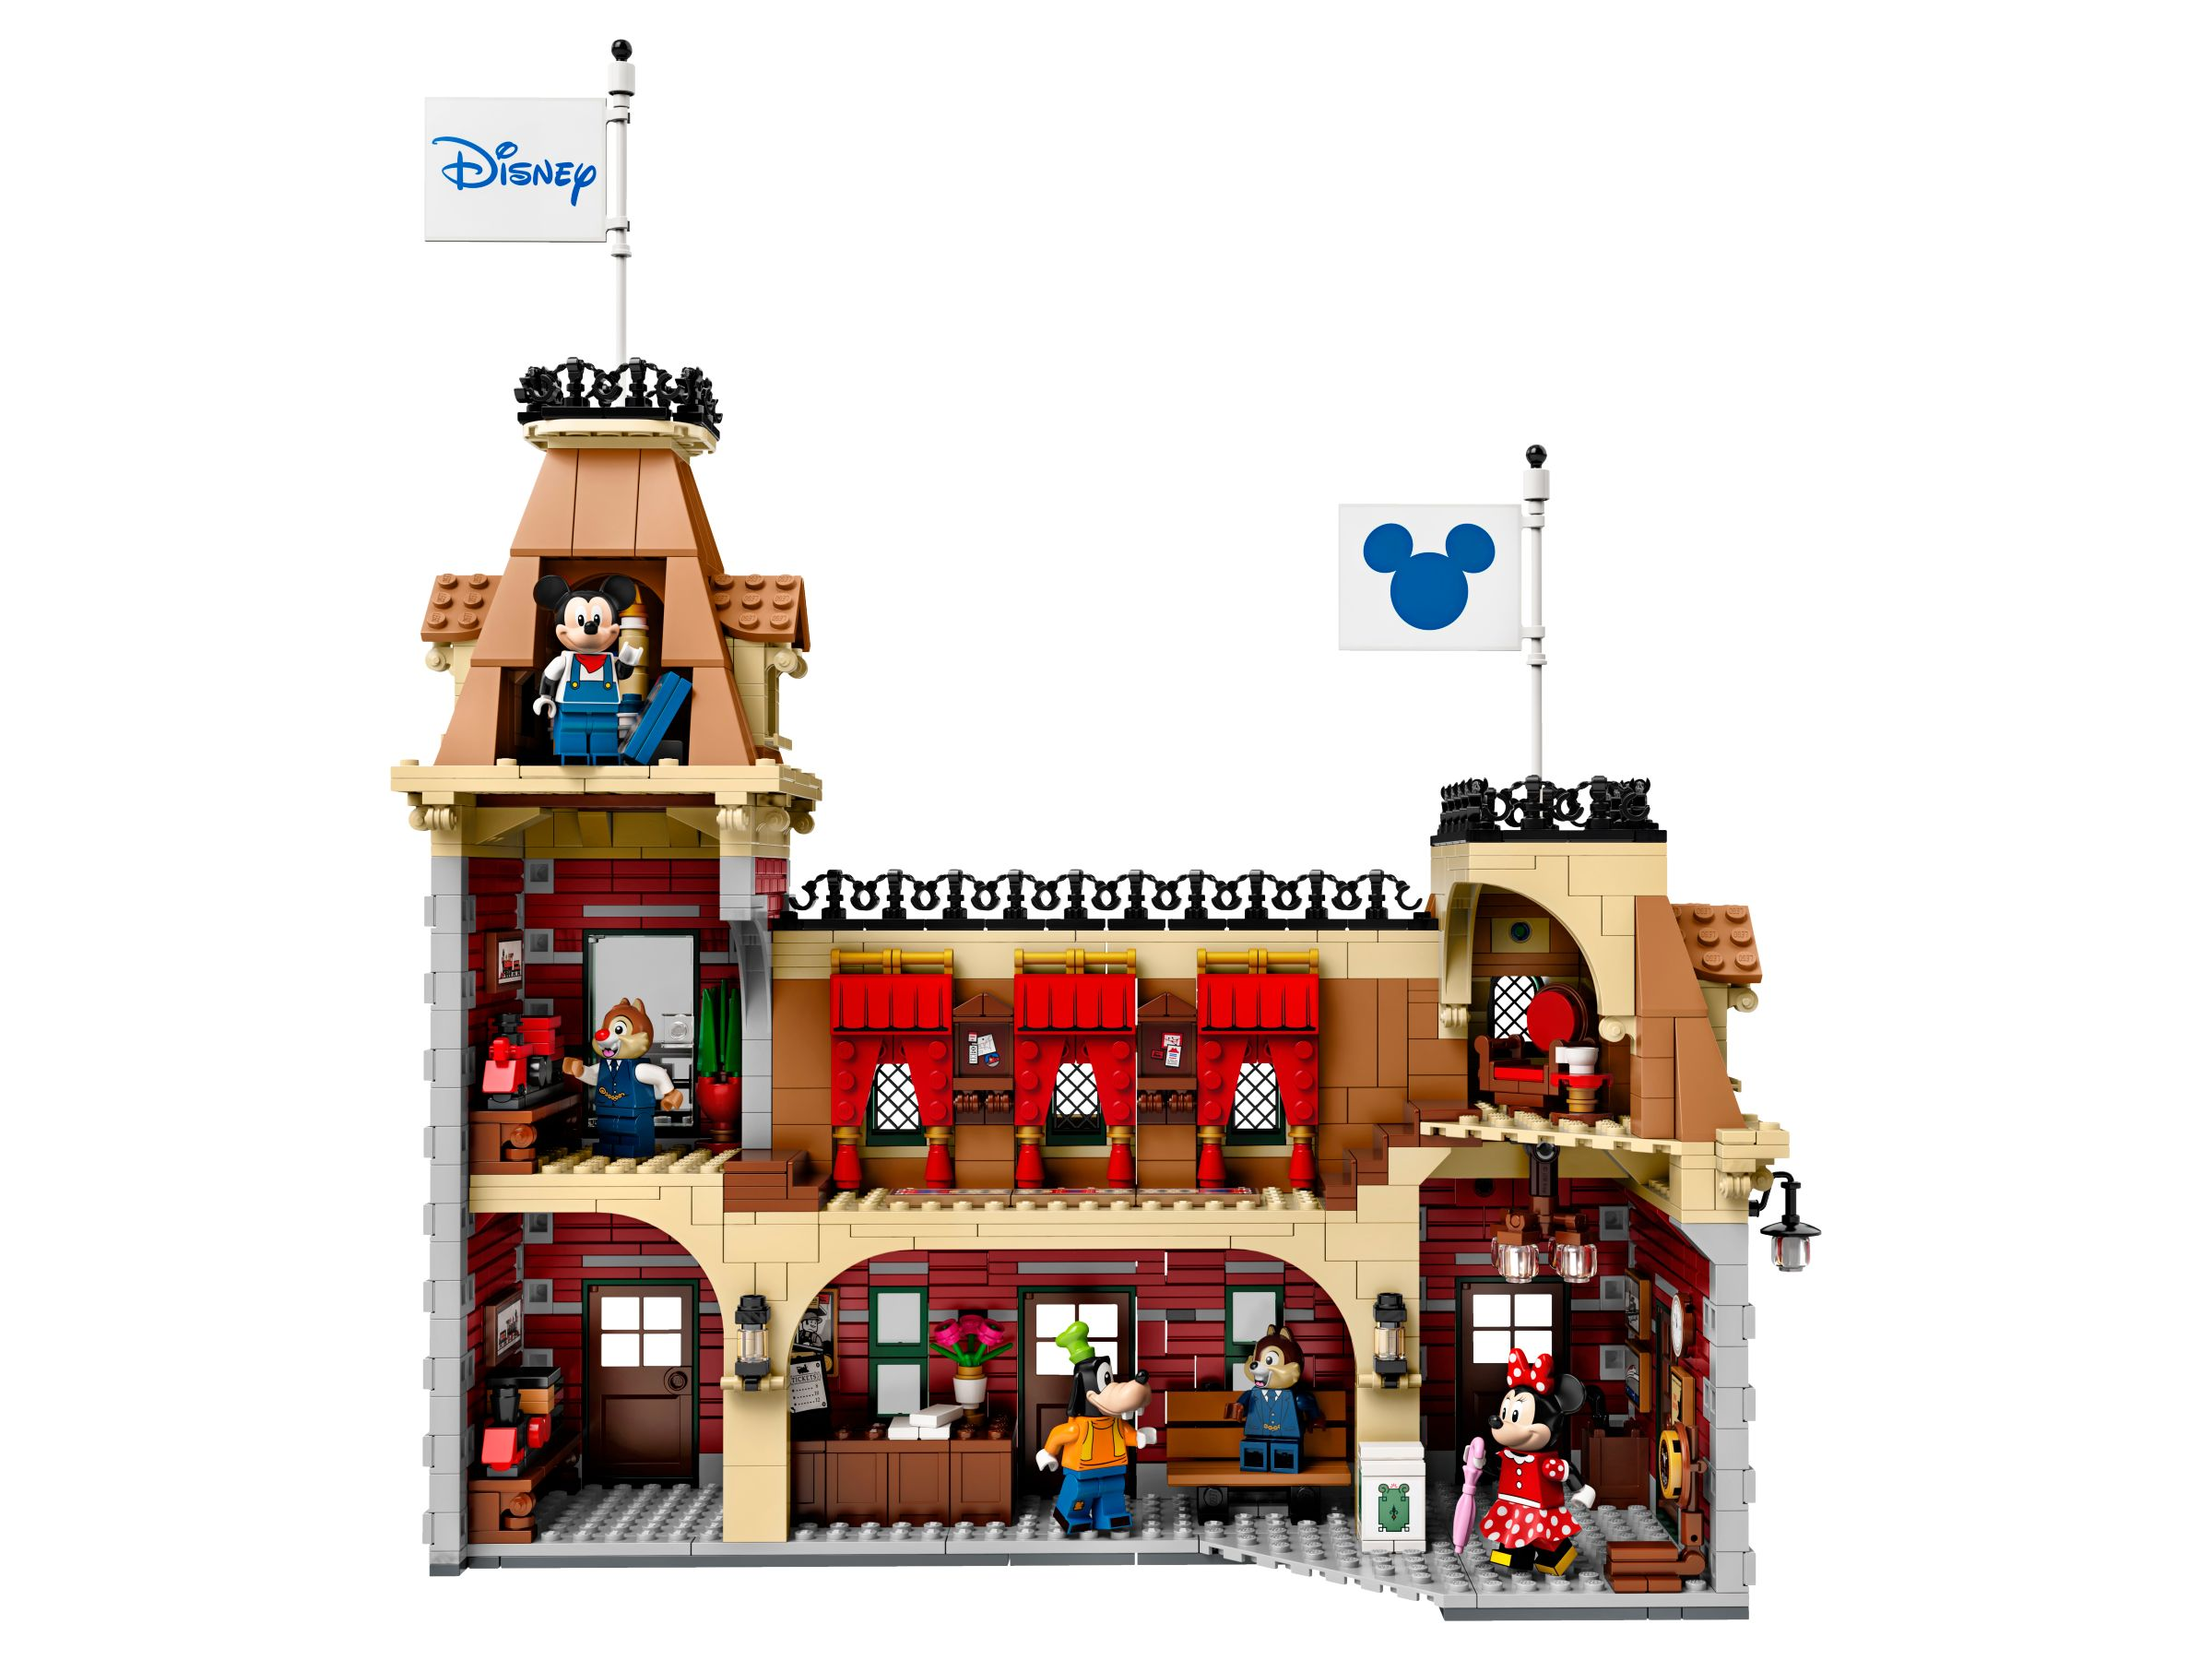 LEGO Advanced Models 71044 Disney Zug mit Bahnhof LEGO_71044_alt3.jpg